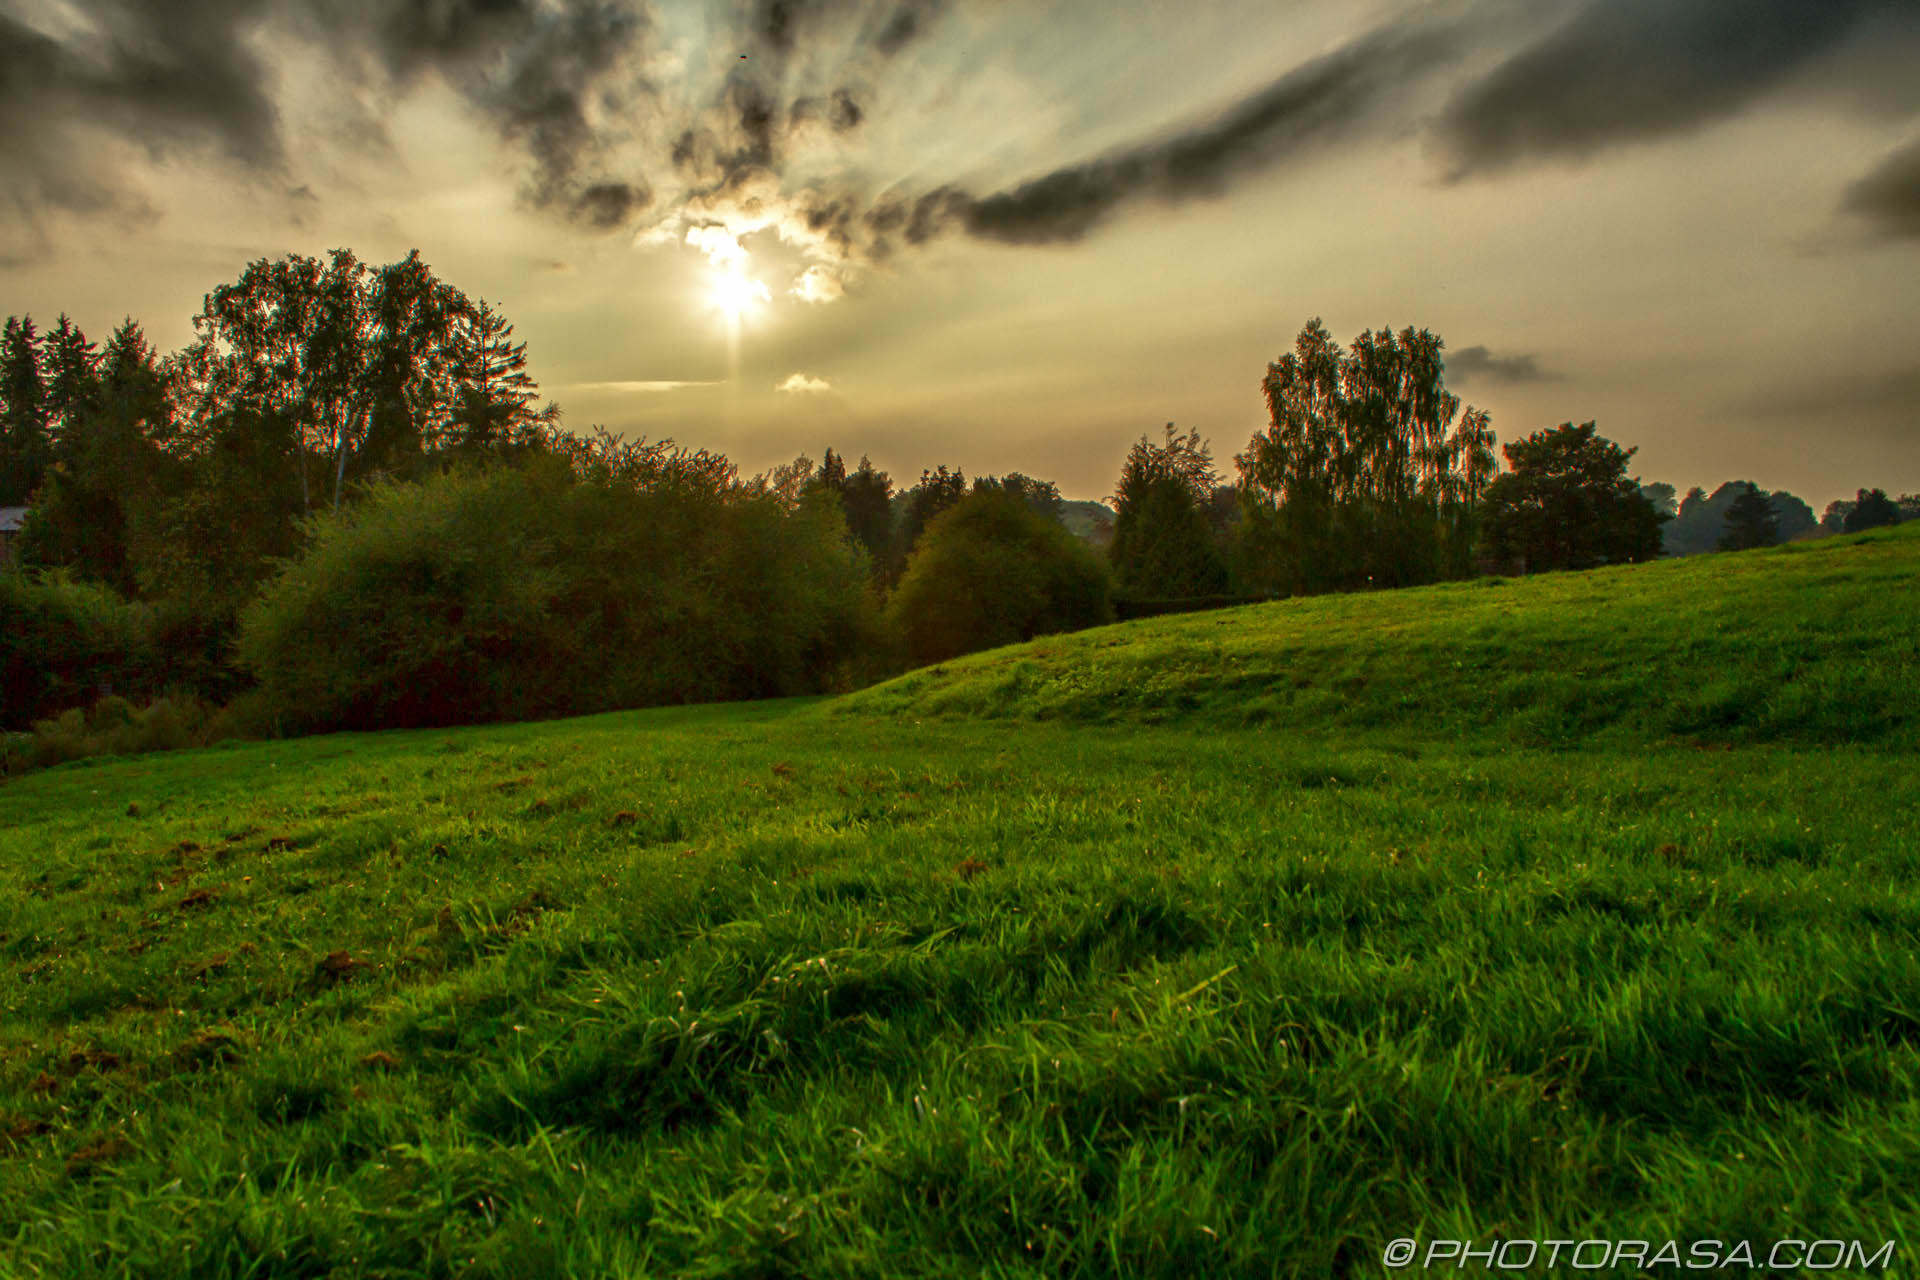 https://photorasa.com/loose-village/late-afternoon-sun-over-a-green-pasture/